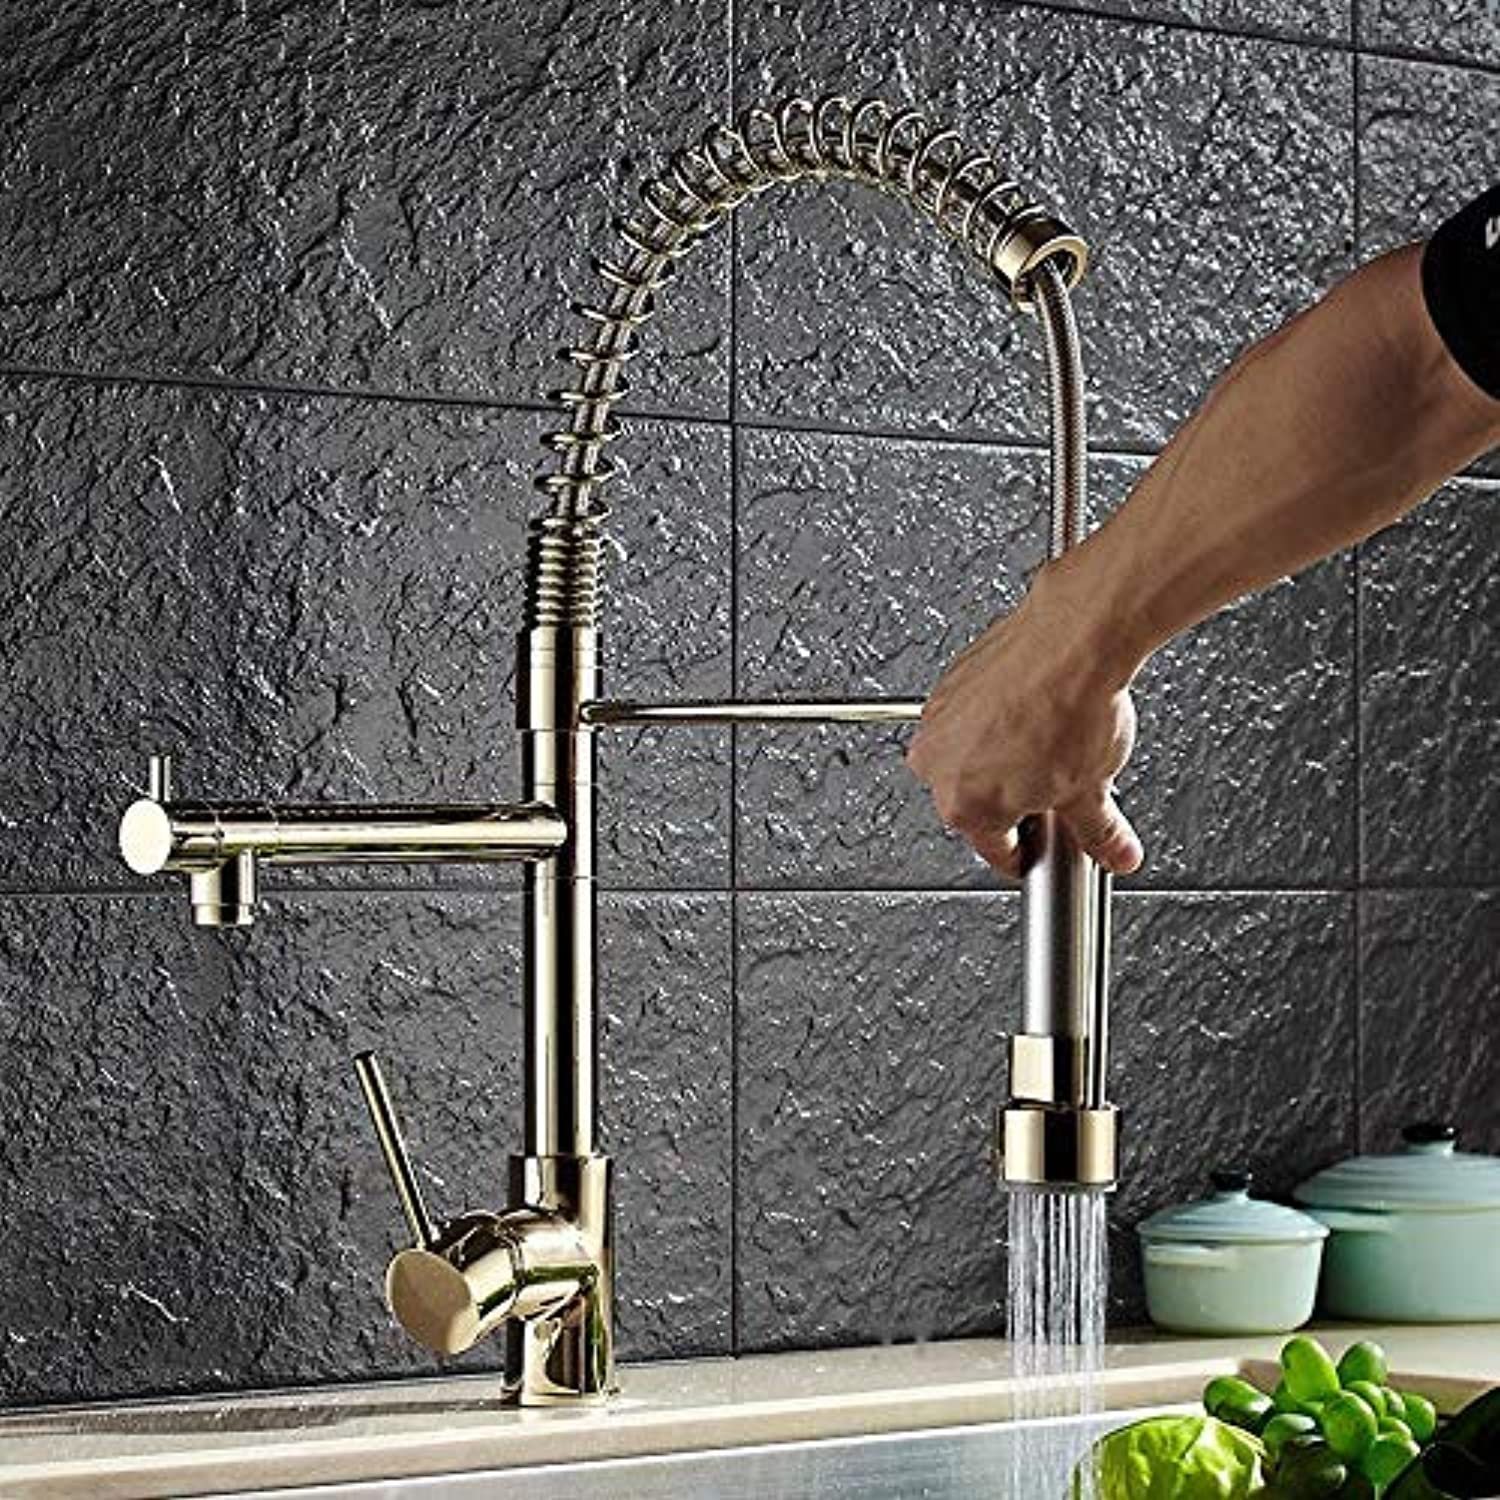 Luxury gold color New Kitchen Tap Water Tap Two Schwenkausl?ufe Extensible Spring Mixer gold Pulling Out Kitchen Sink Faucet (color   -, Size   -)